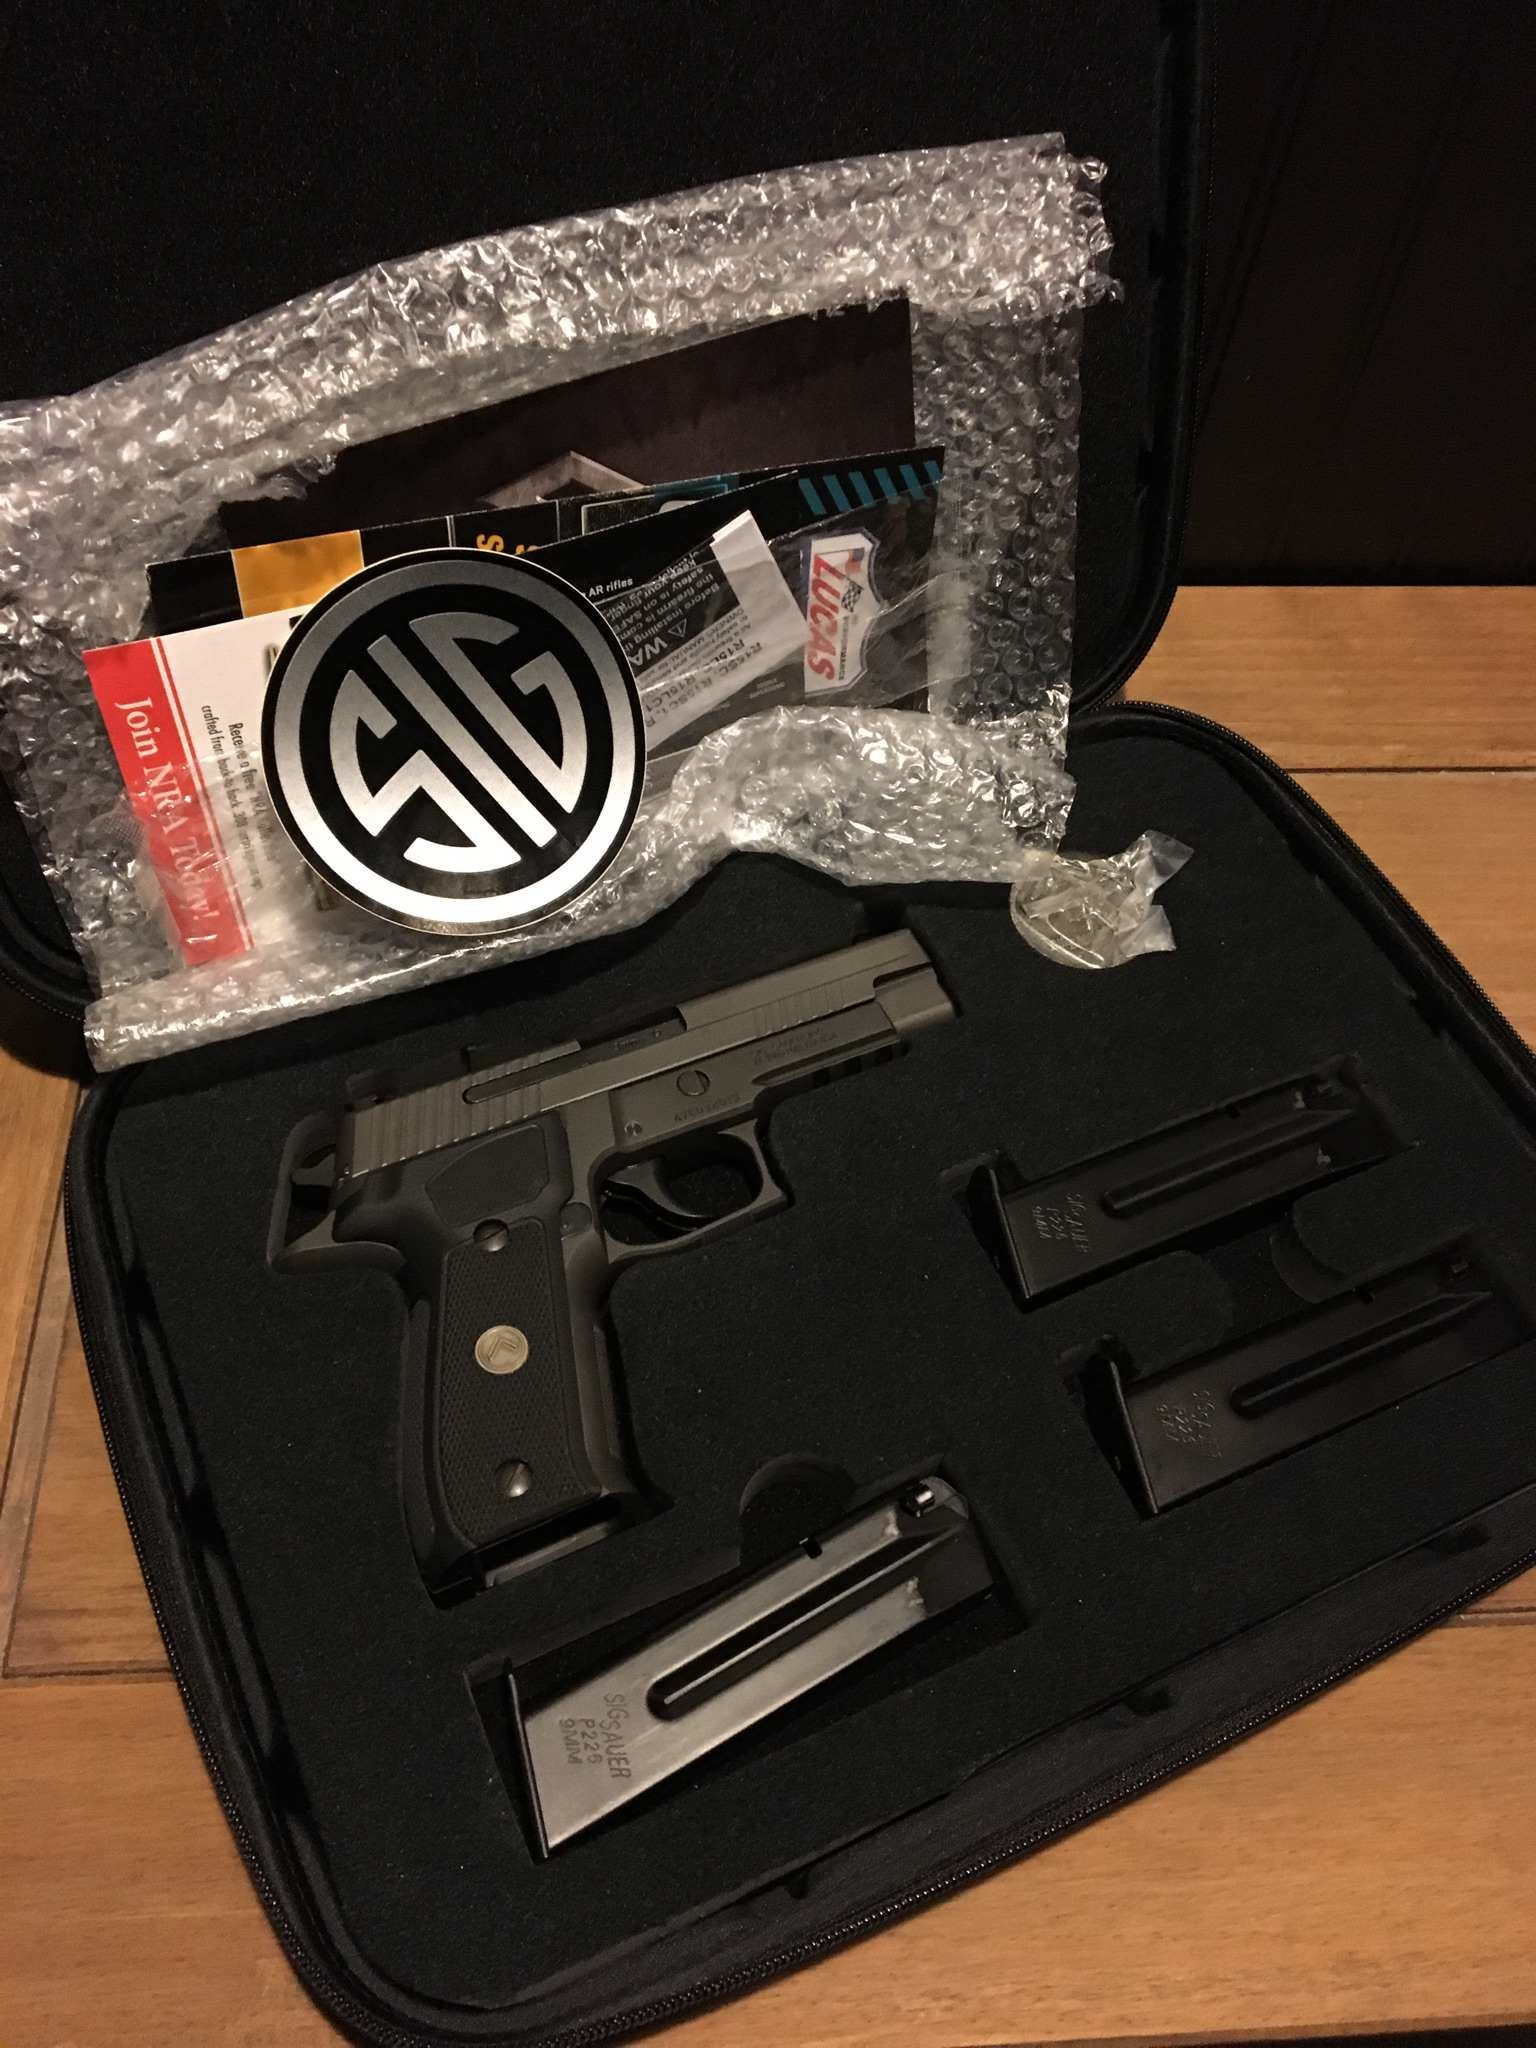 - Previously Enjoyed - Sig Sauer Legion 9mm